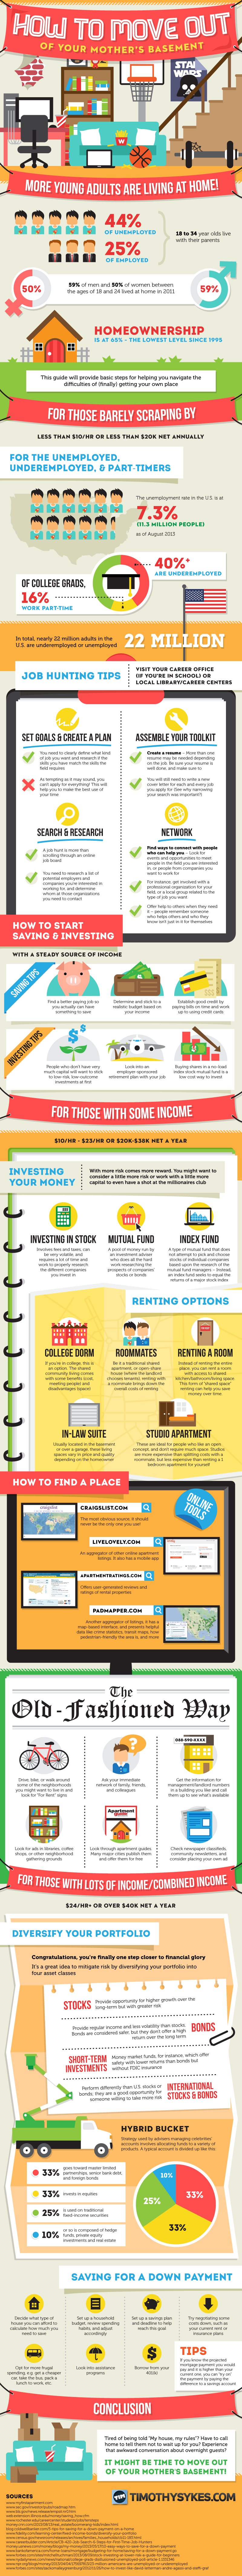 Stuck at Parents Home-Infographic